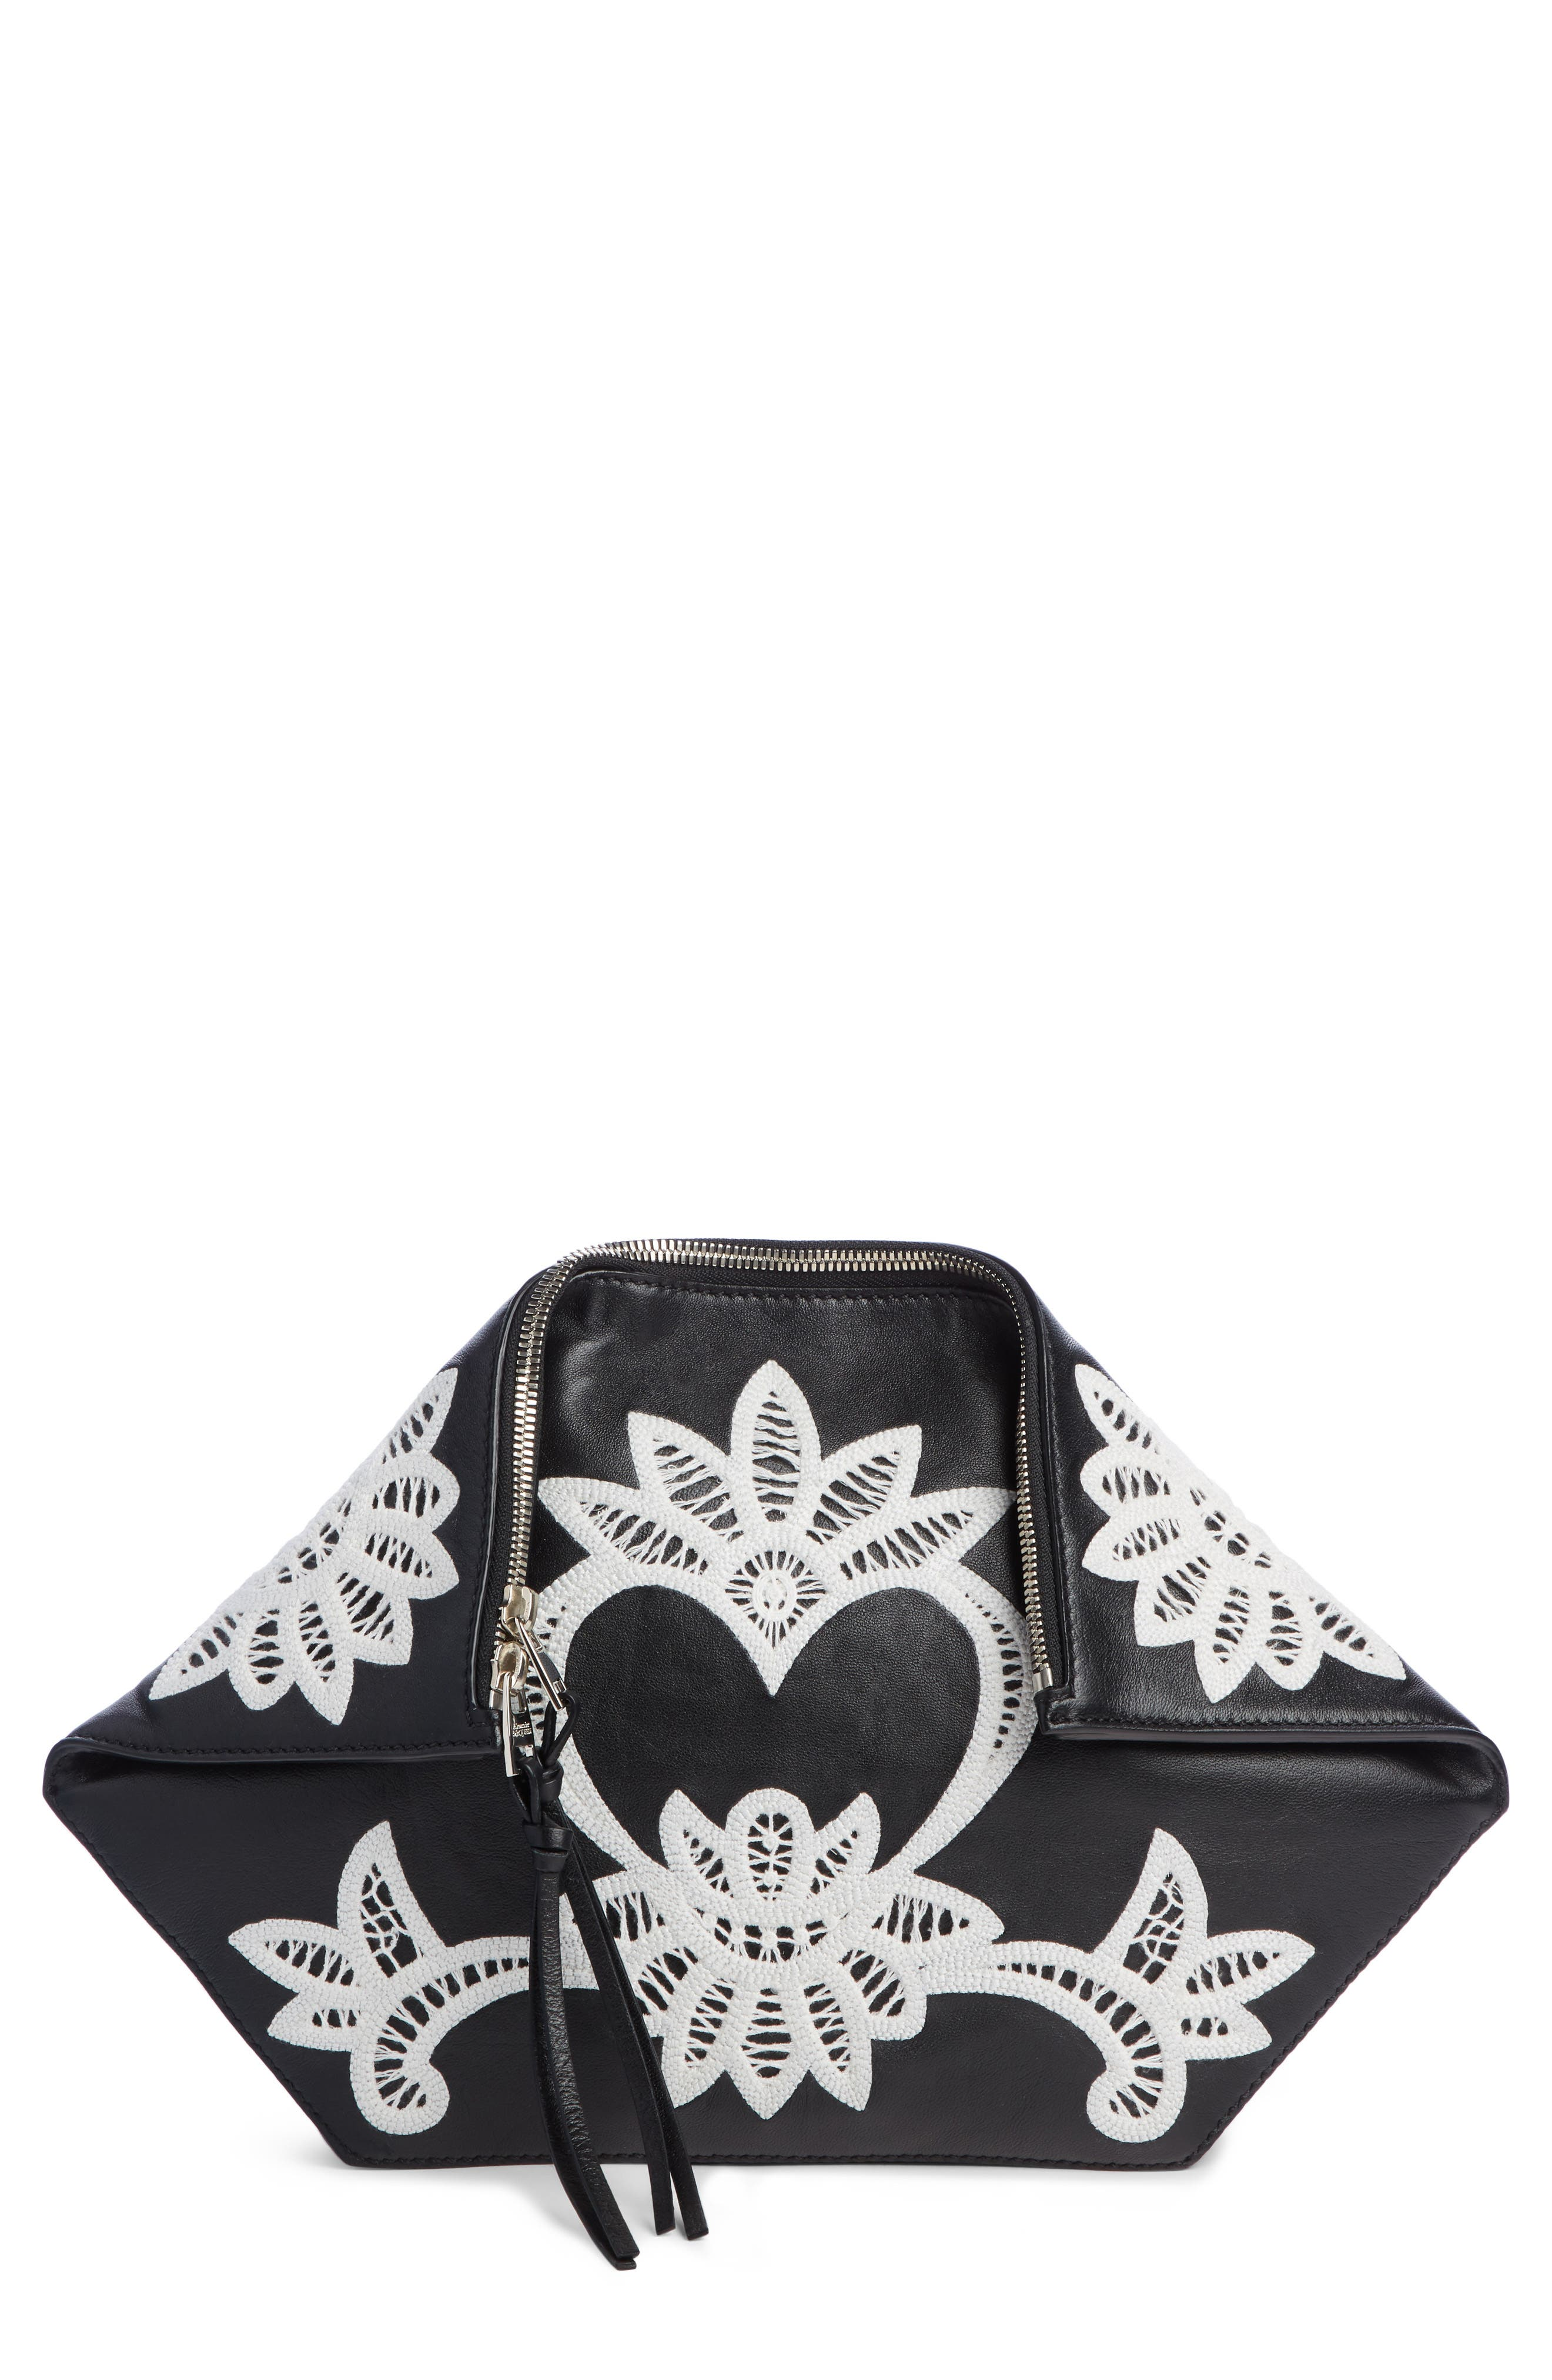 ALEXANDER MCQUEEN, Embroidered Leather Butterfly Pouch, Main thumbnail 1, color, BLACK/ IVORY